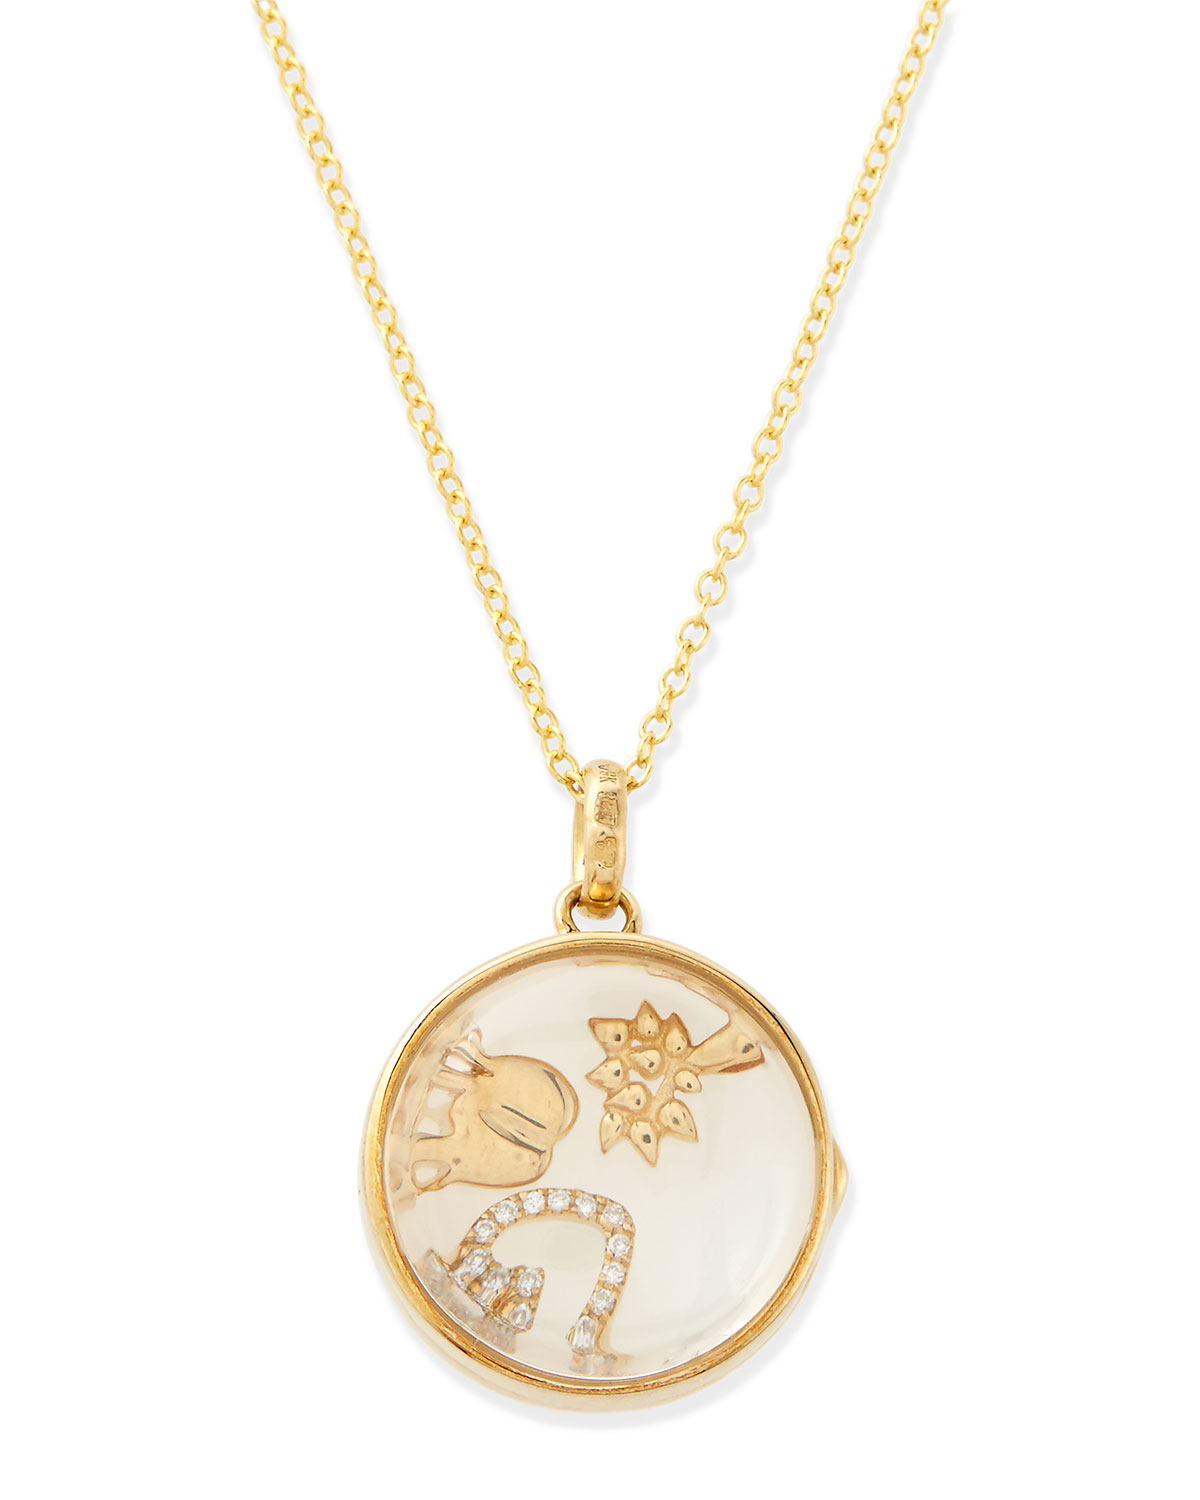 Happiness Charm Locket Necklace - Loquet London